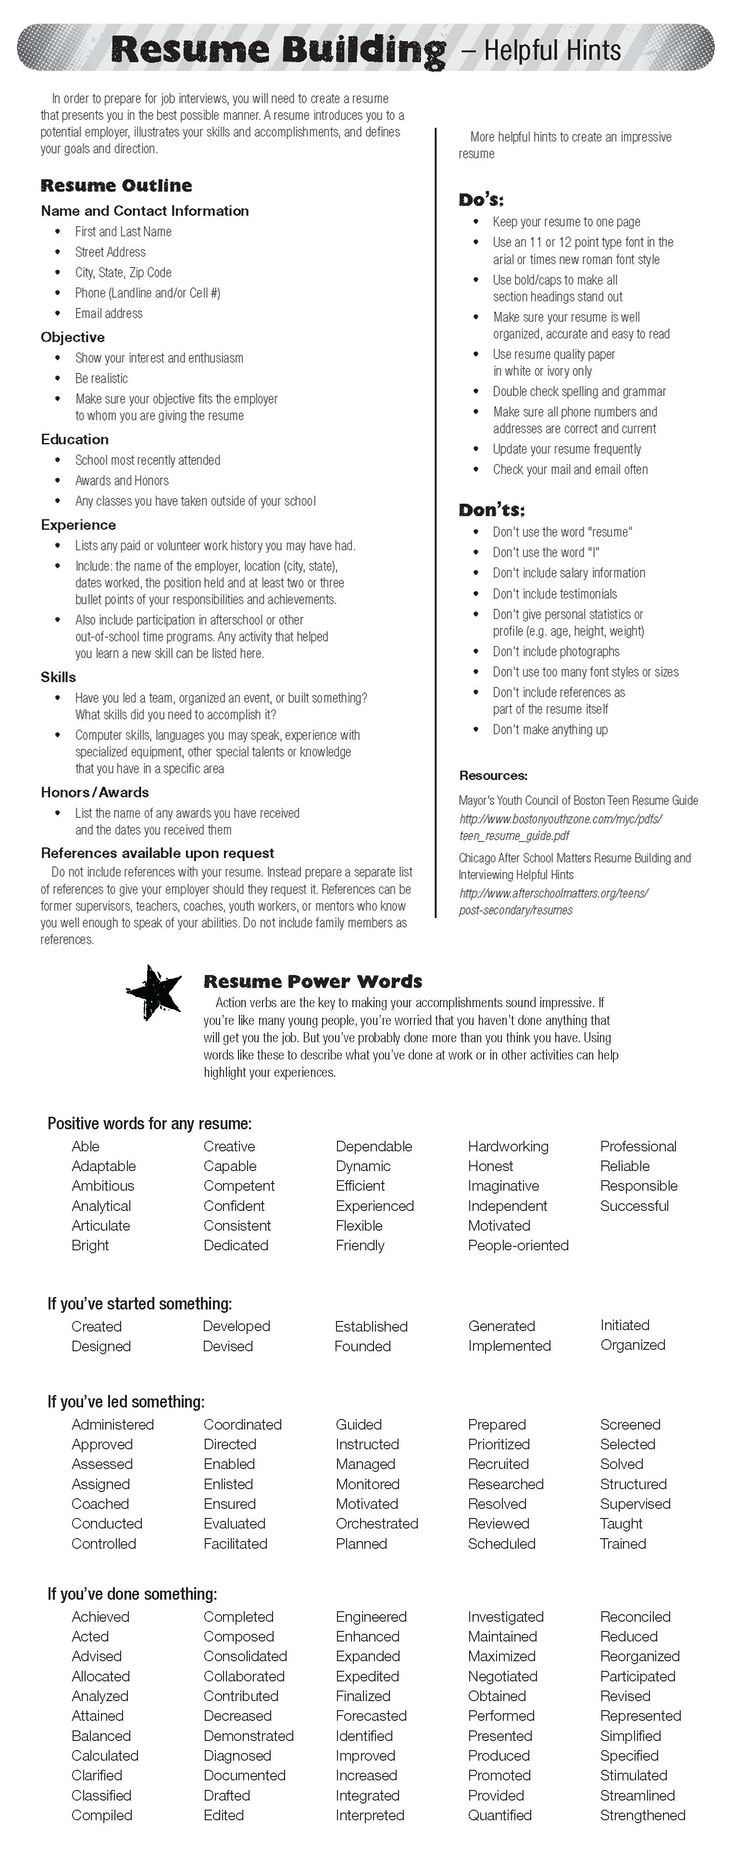 Opposenewapstandardsus  Inspiring  Ideas About Resume On Pinterest  Cv Format Resume Cv And  With Glamorous  Ideas About Resume On Pinterest  Cv Format Resume Cv And Resume Templates With Nice Free Make A Resume Also Career Counselor Resume In Addition Mailroom Clerk Resume And Server Job Duties For Resume As Well As What To Include On Your Resume Additionally Ministry Resume Template From Pinterestcom With Opposenewapstandardsus  Glamorous  Ideas About Resume On Pinterest  Cv Format Resume Cv And  With Nice  Ideas About Resume On Pinterest  Cv Format Resume Cv And Resume Templates And Inspiring Free Make A Resume Also Career Counselor Resume In Addition Mailroom Clerk Resume From Pinterestcom